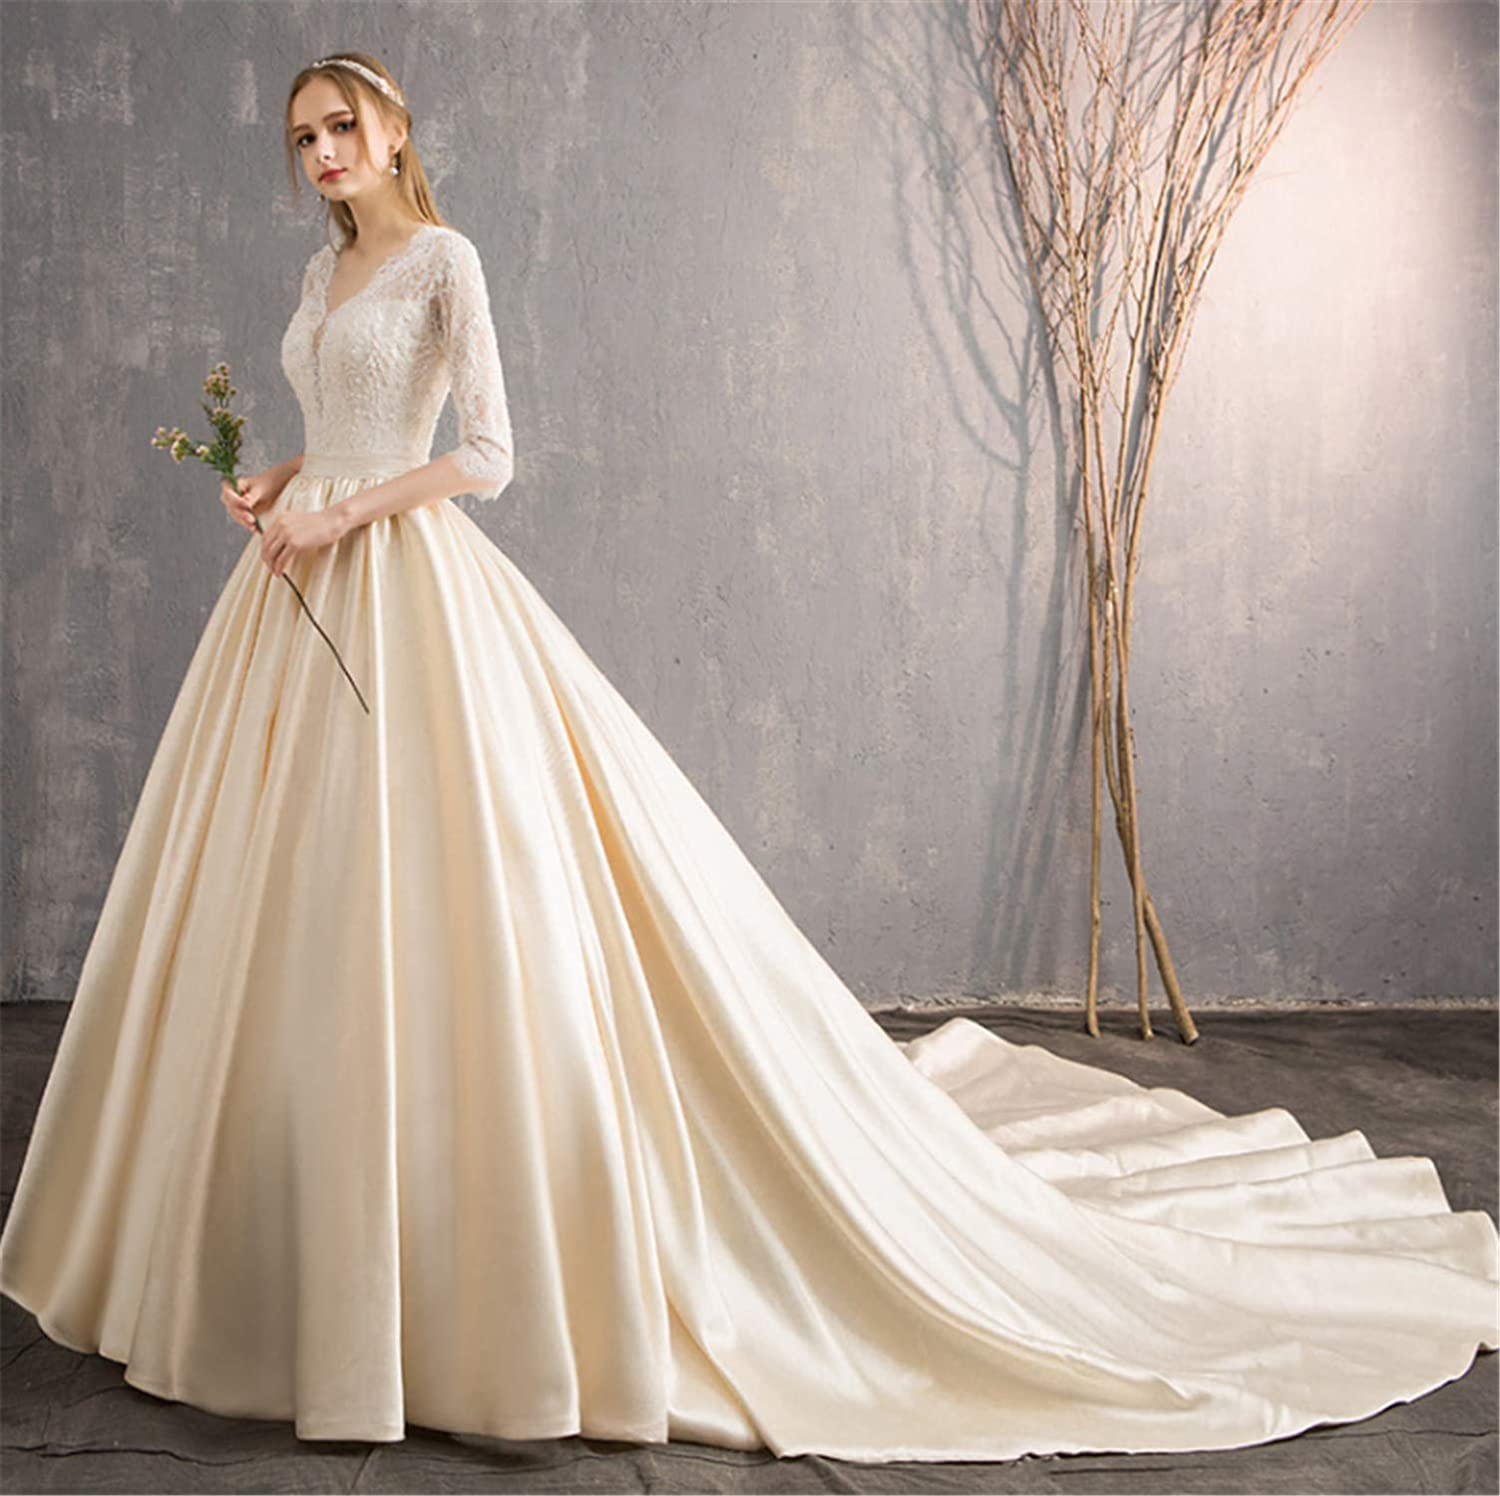 Wedding Dress,Ladies Princess Backless Stylish Wedding Dresswith with Sleeves Perfect Line Dragged Big Long Trailing White and Champagne